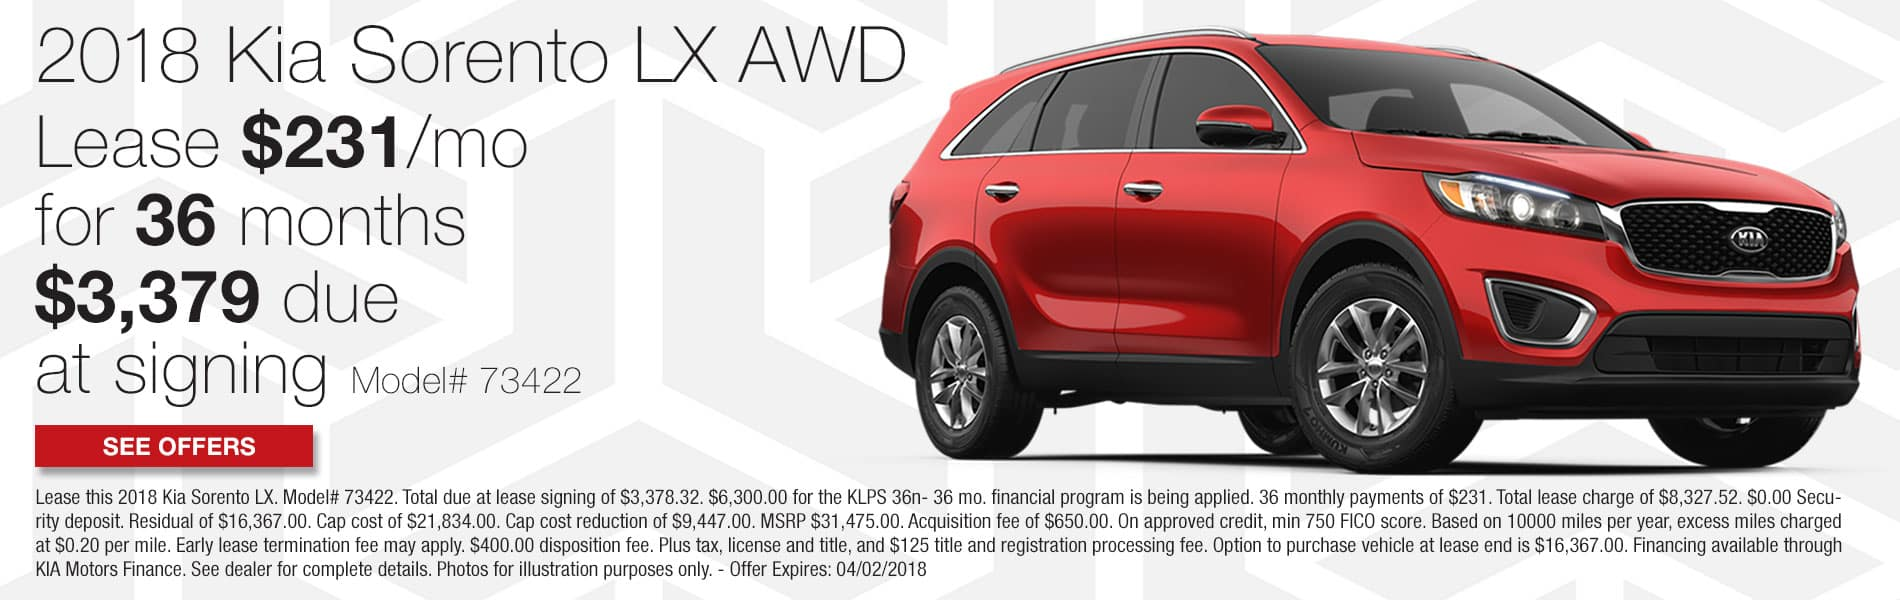 Lease a new 2018 Kia Sorento LX AWD for $231 per month with $3,379 due at signing